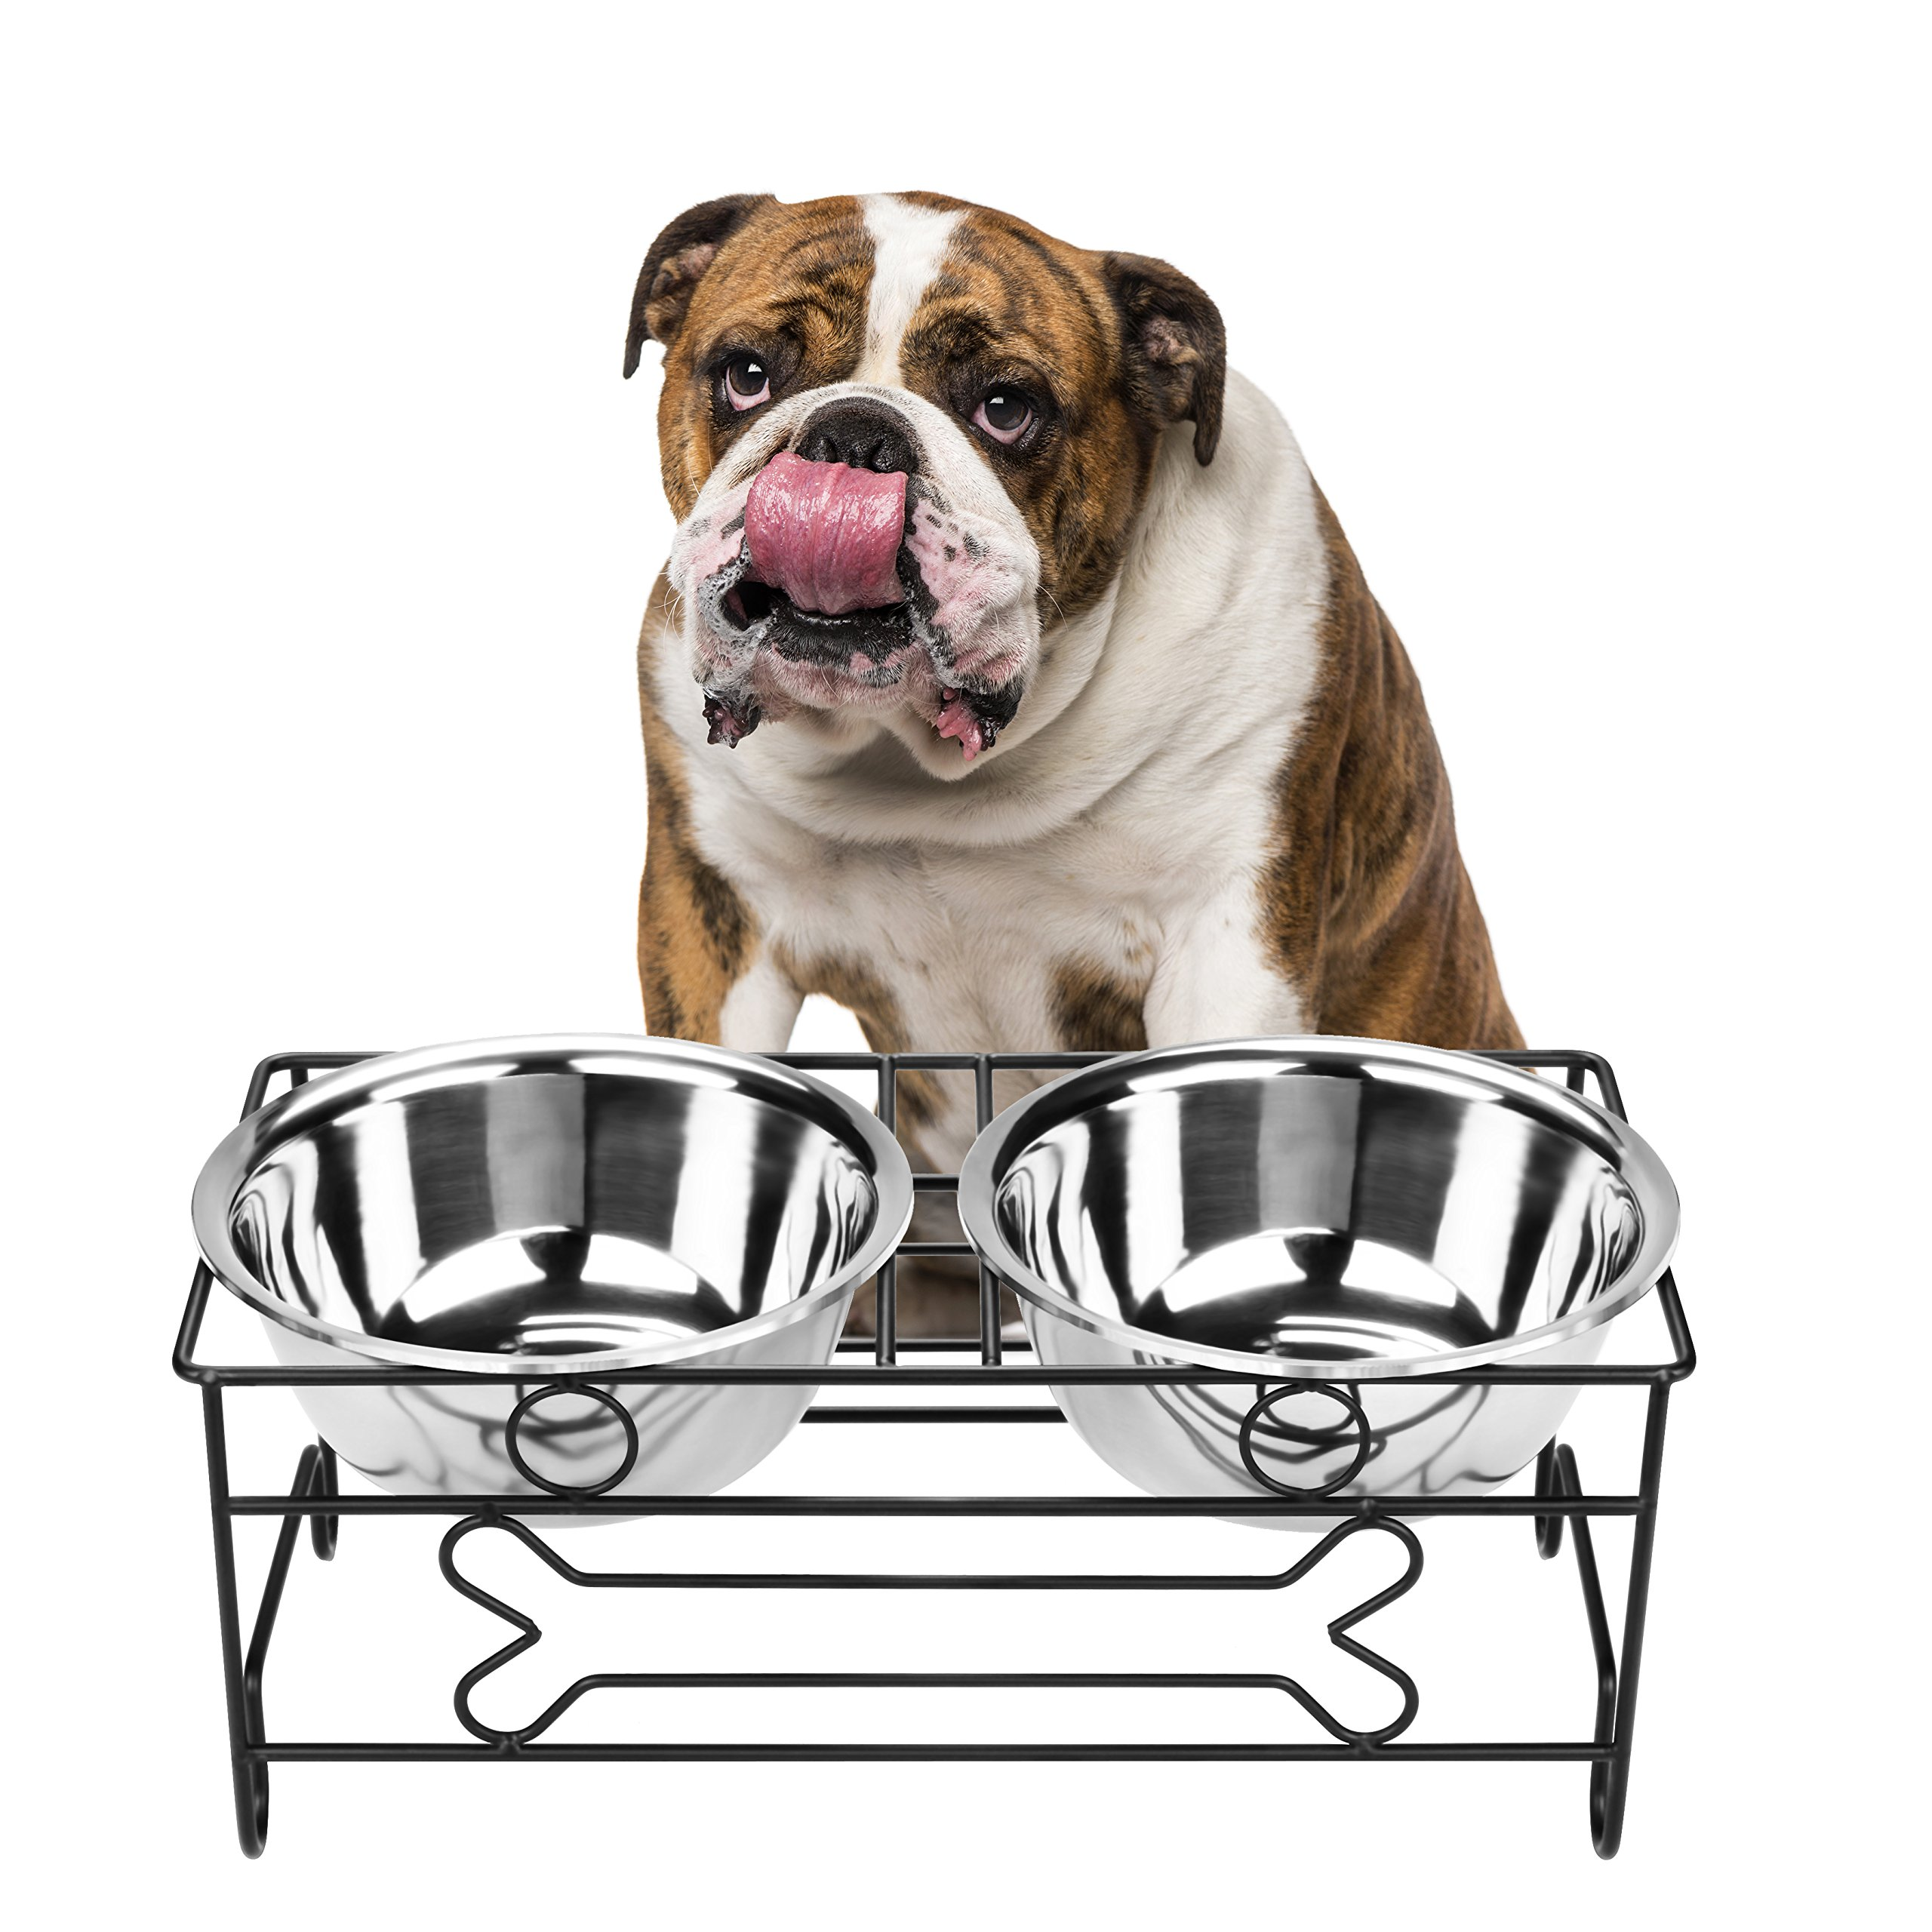 VIVIKO Bone Style Pet Feeder for Dog Cat, Stainless Steel Food and Water Bowls with Iron Stand (Large) by VIVIKO